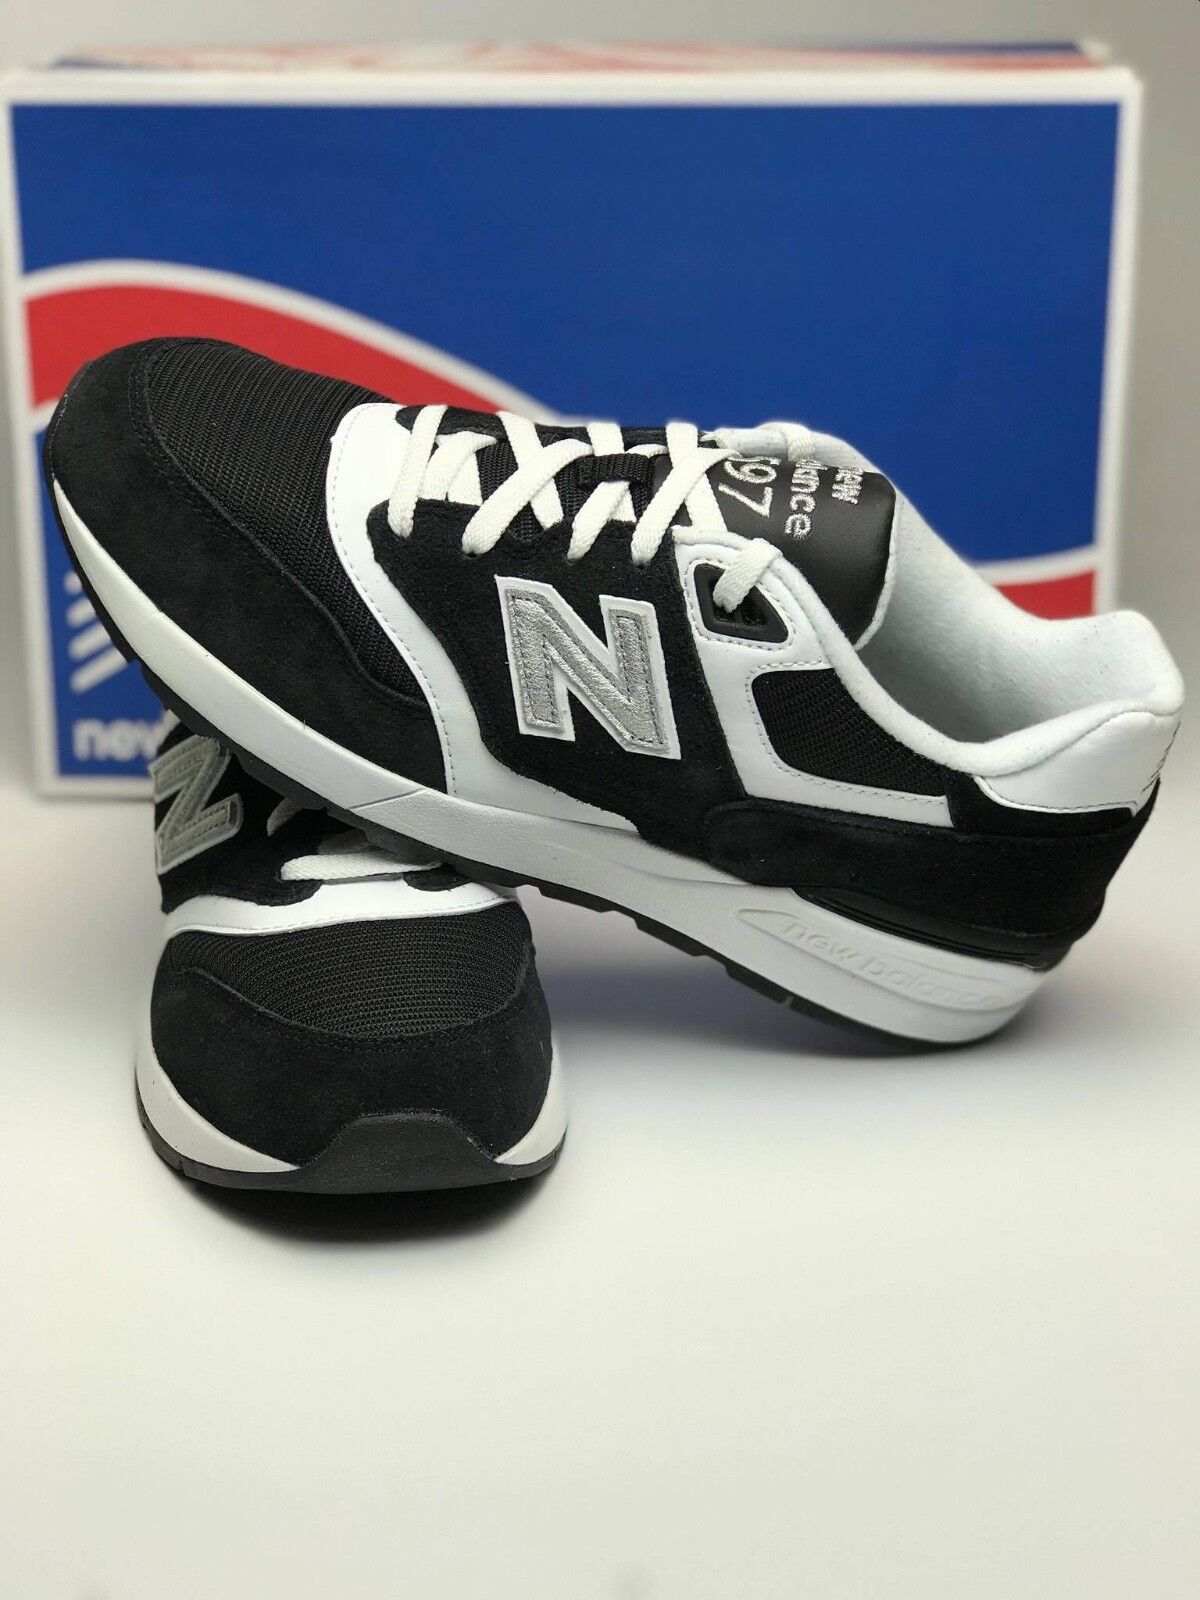 New Balance 597 ML597RSD Black White Grey Size 9 Runners New In Box